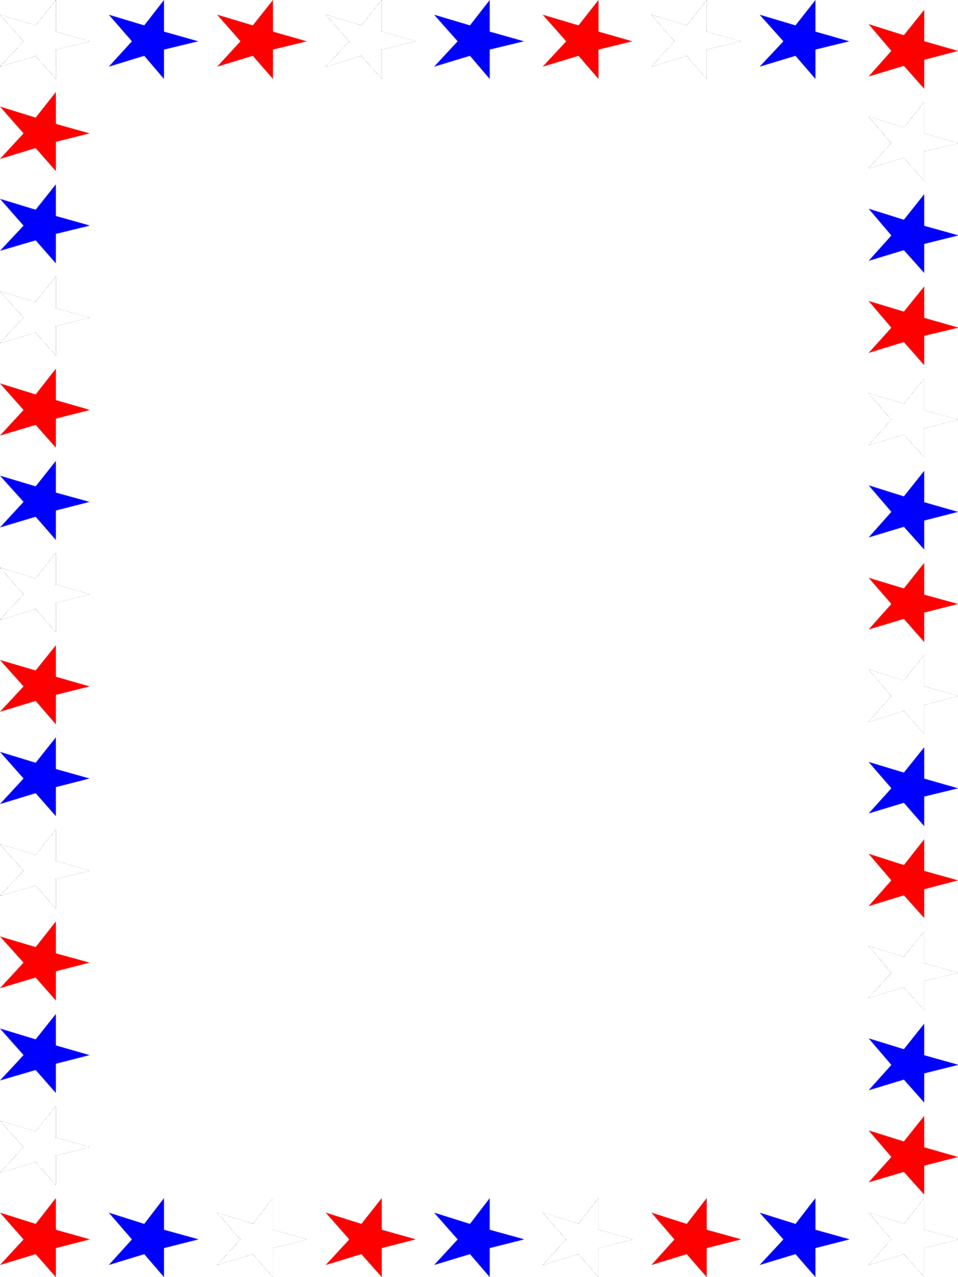 Illustration of a blank frame border of red white and blue stars